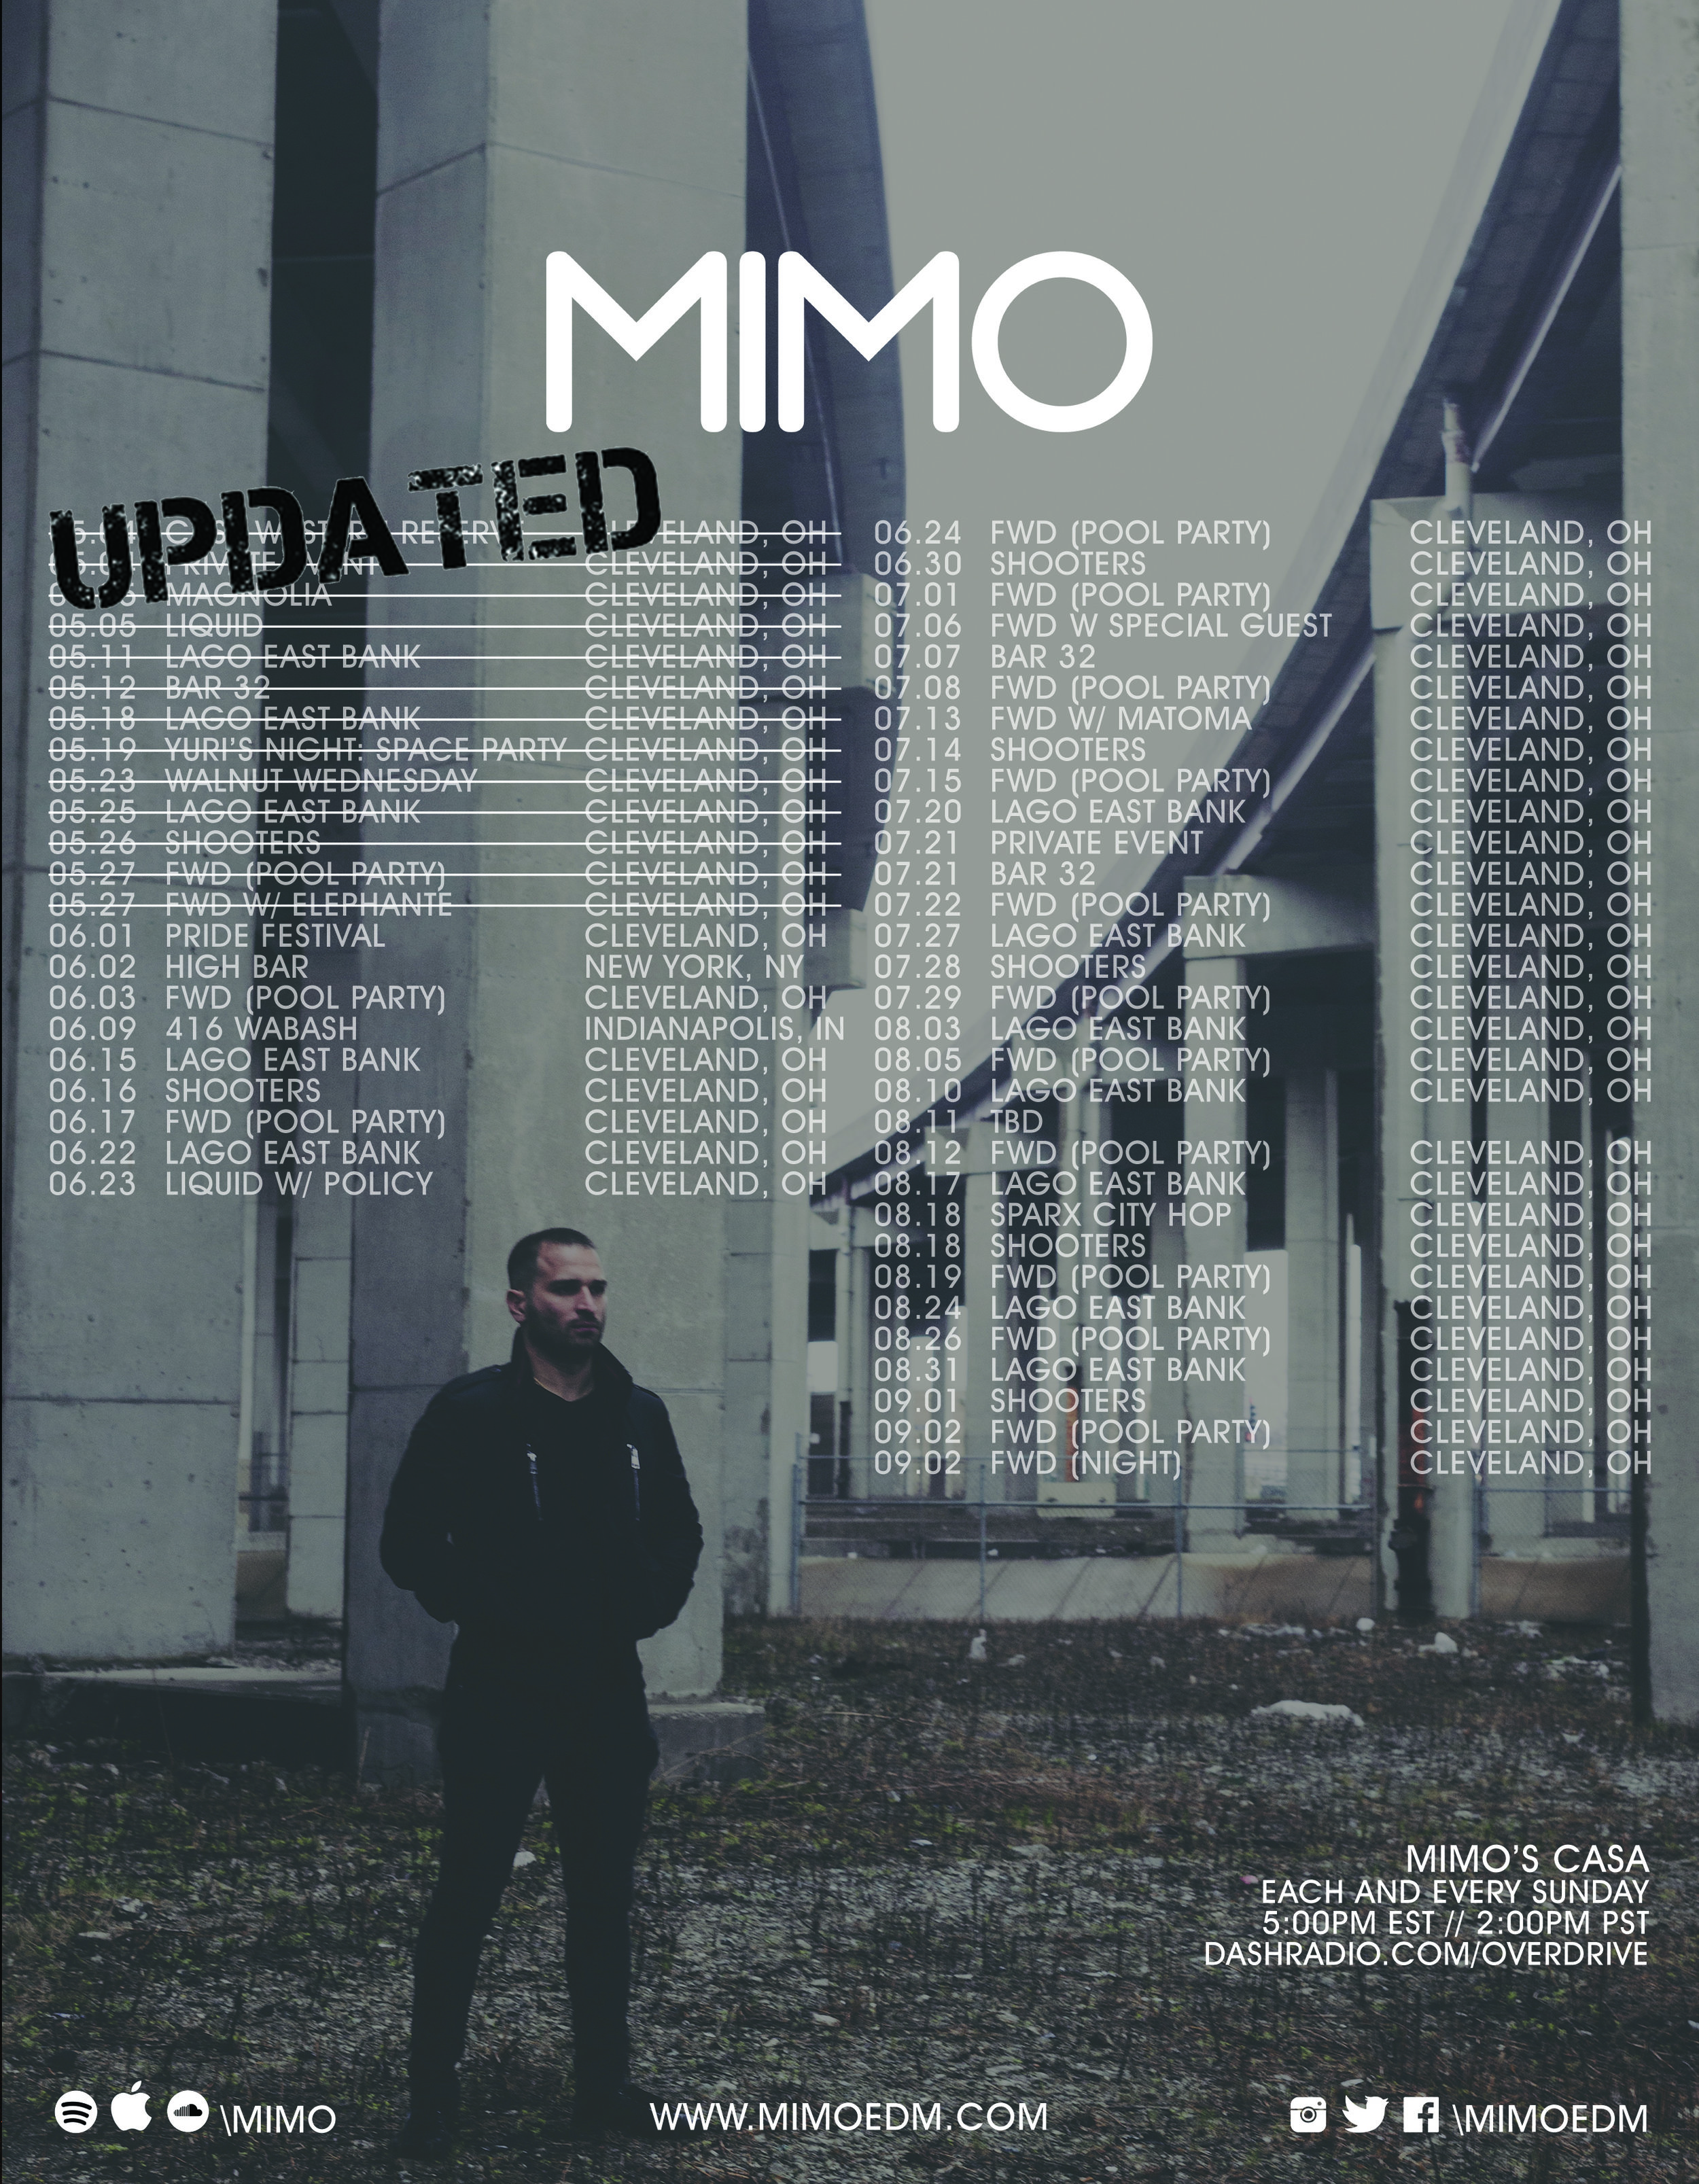 MIMO_MAY-JULY SCHEDULE 18_Updated.jpg